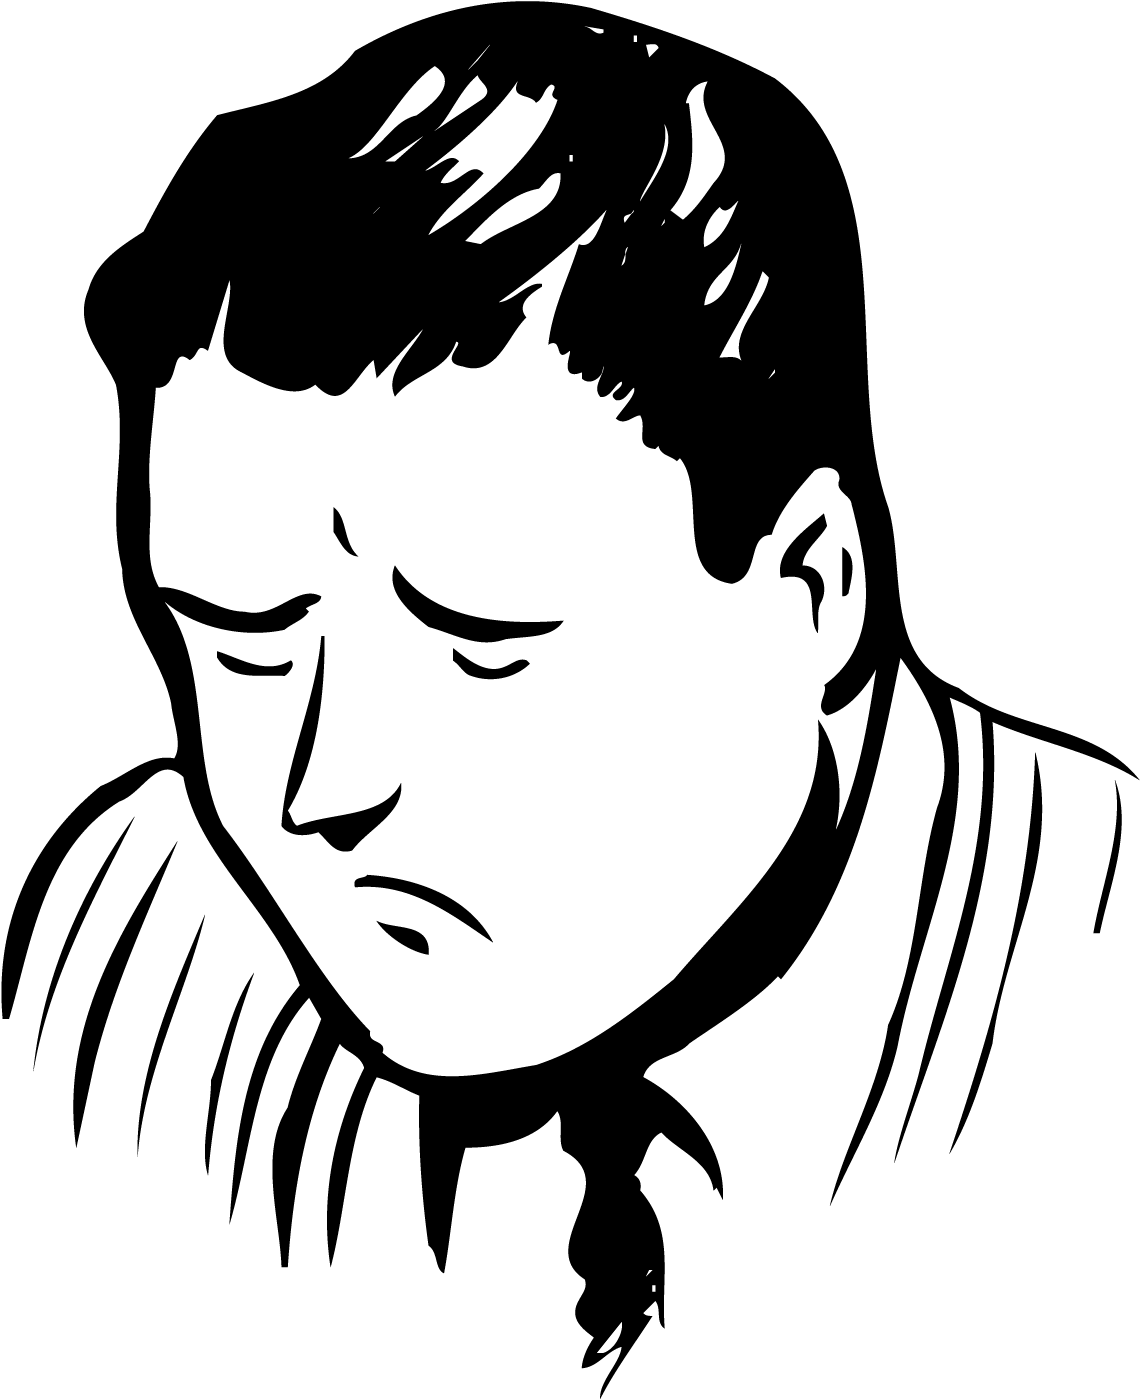 B ack dad clipart graphic transparent stock Man29 - Sad Dad Clipart Black And White - Png Download - Full Size ... graphic transparent stock